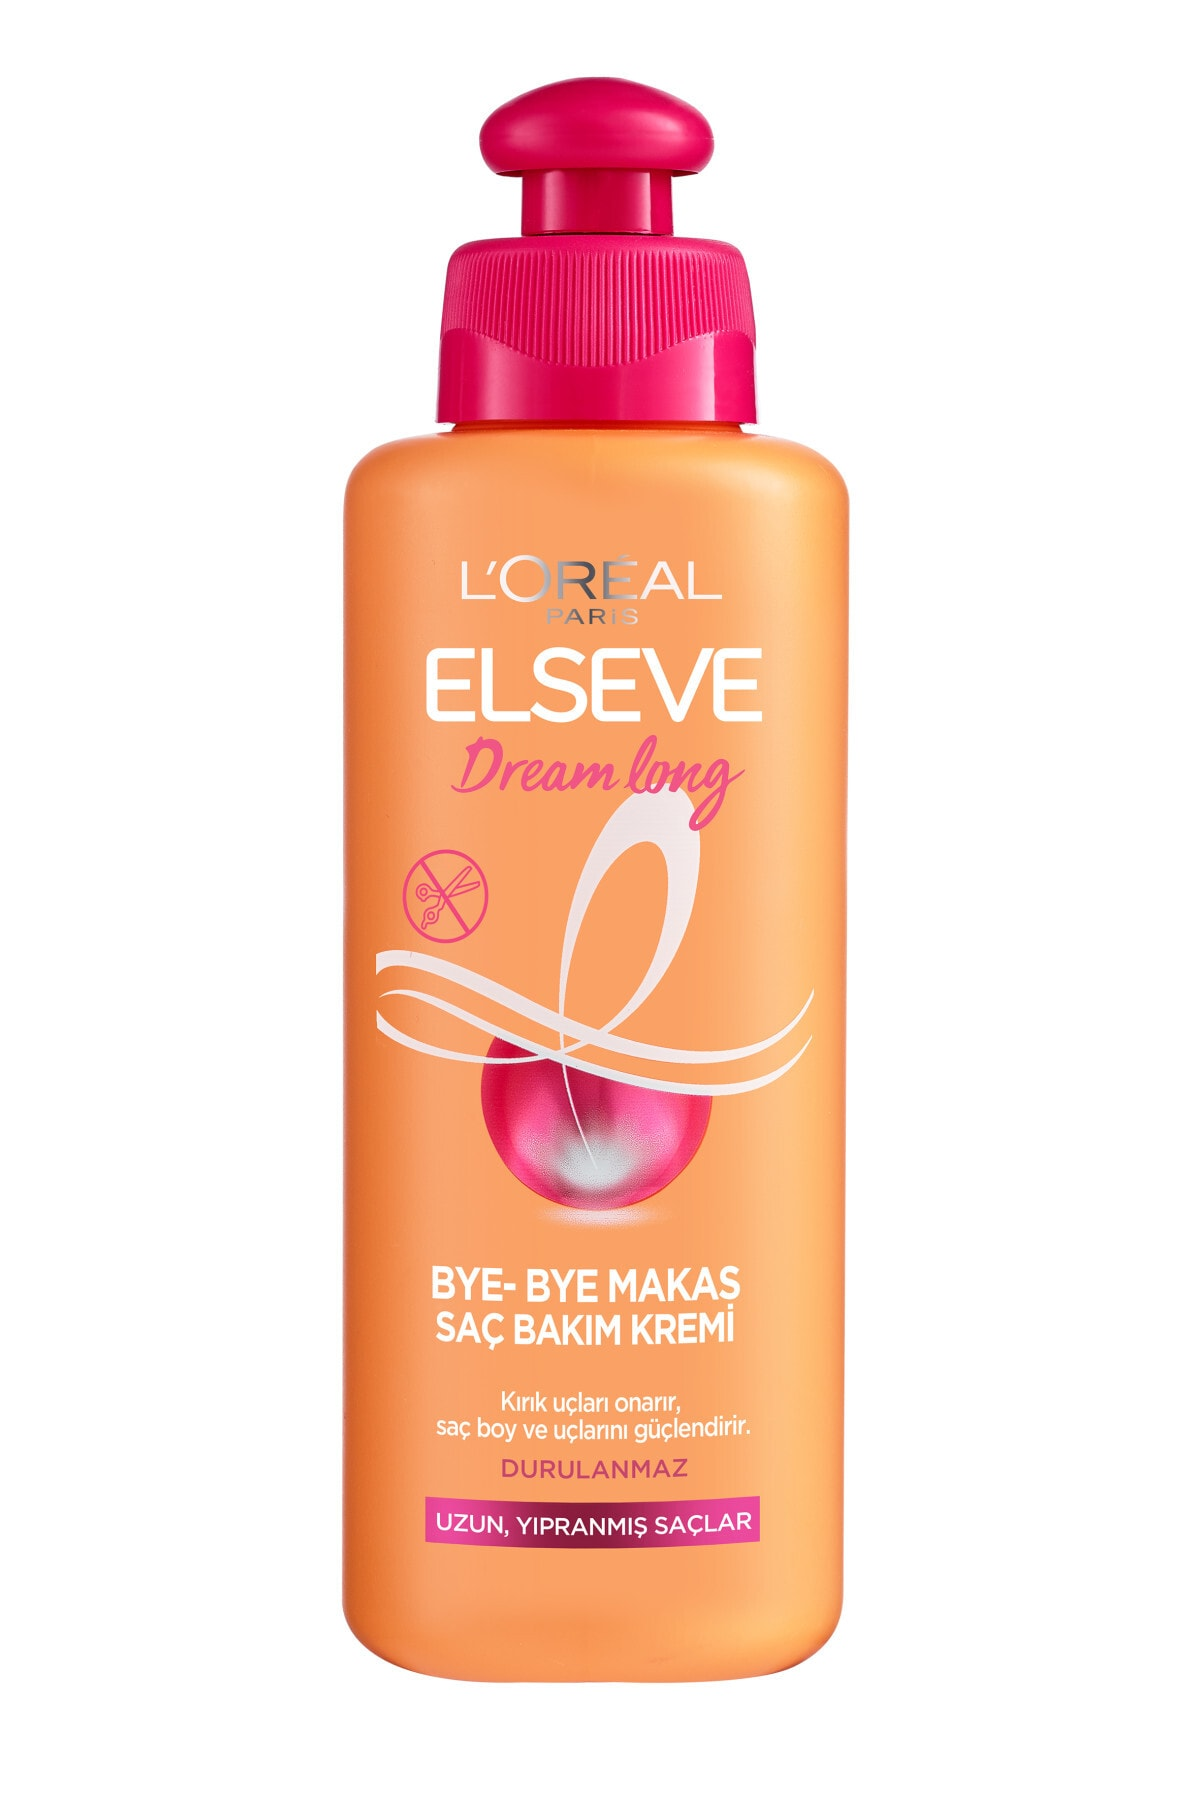 ELSEVE L'oréal Paris Dream Long Bye-bye Makas Saç Bakım Kremi 200 ml 2